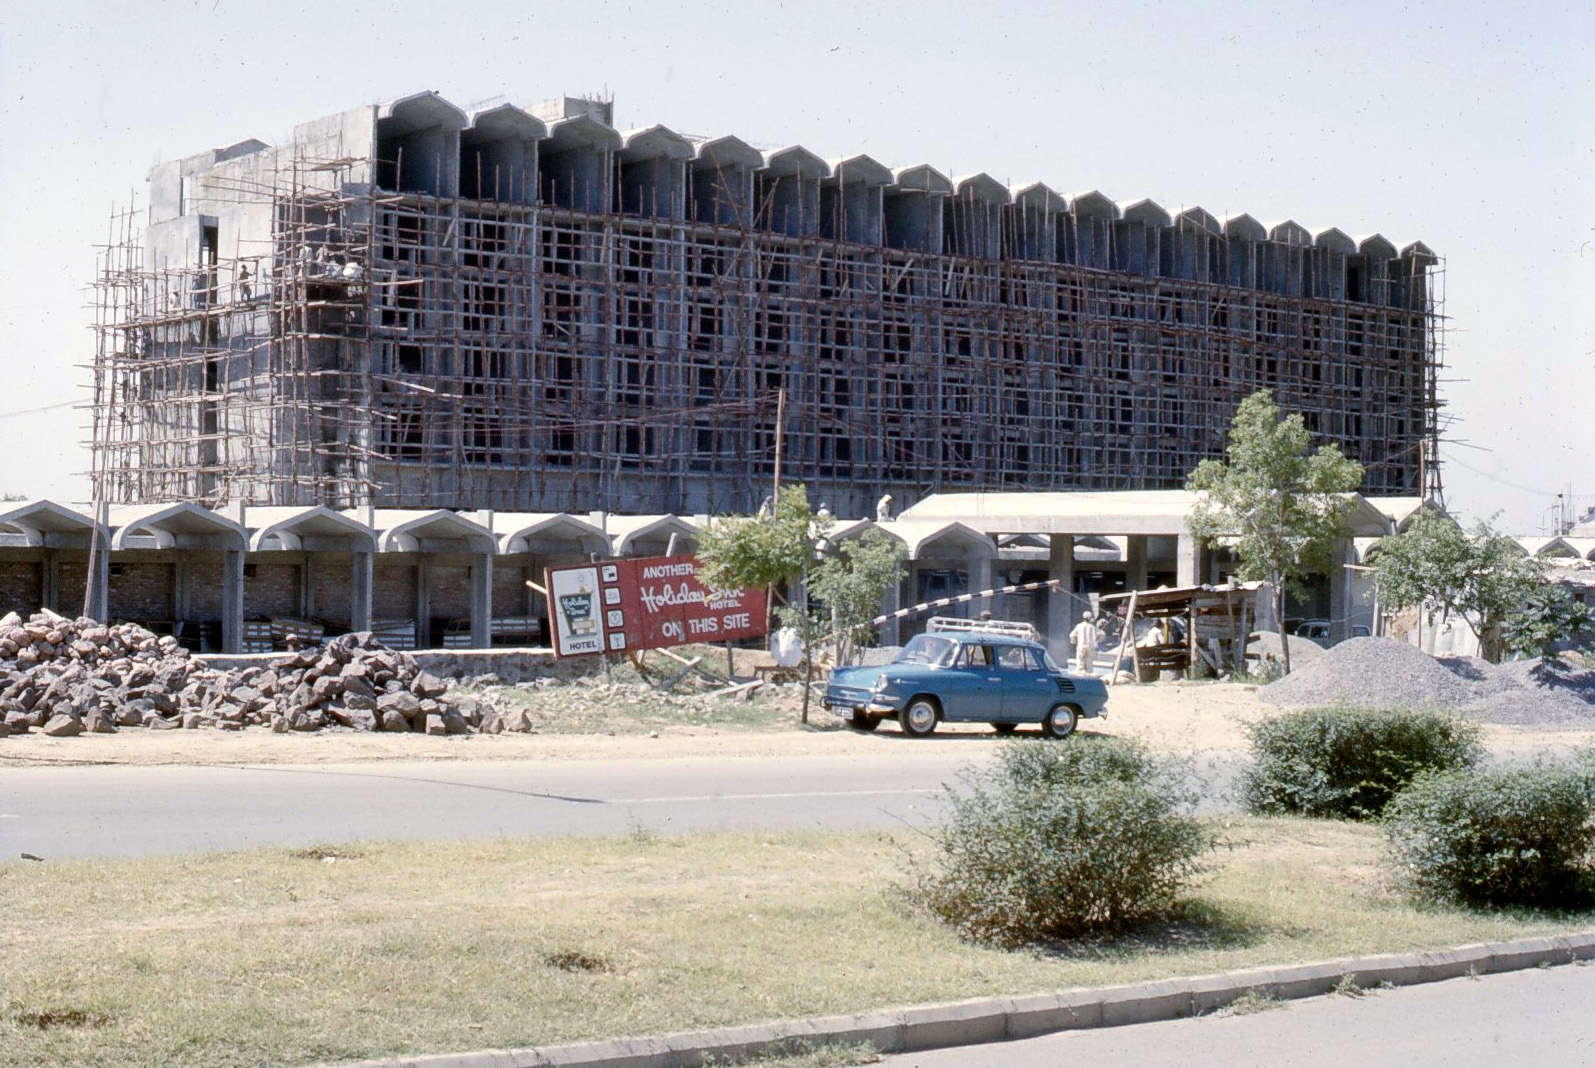 Marriot Hotel, Islamabad in 1977